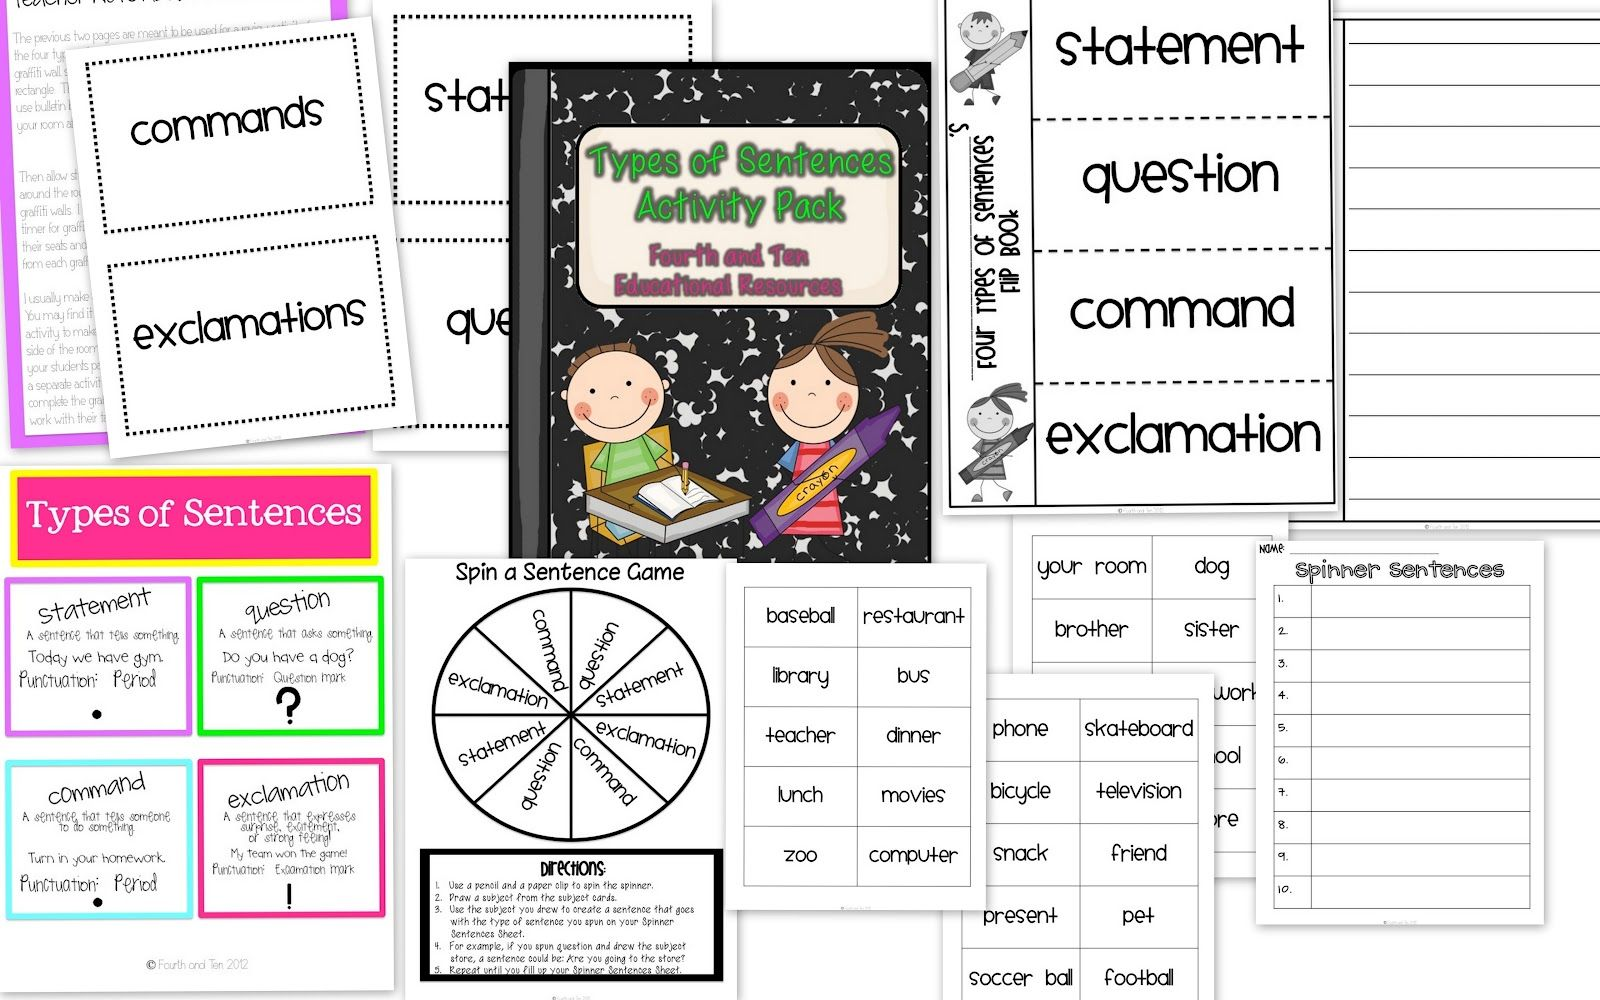 Types Of Sentences Activity Packet